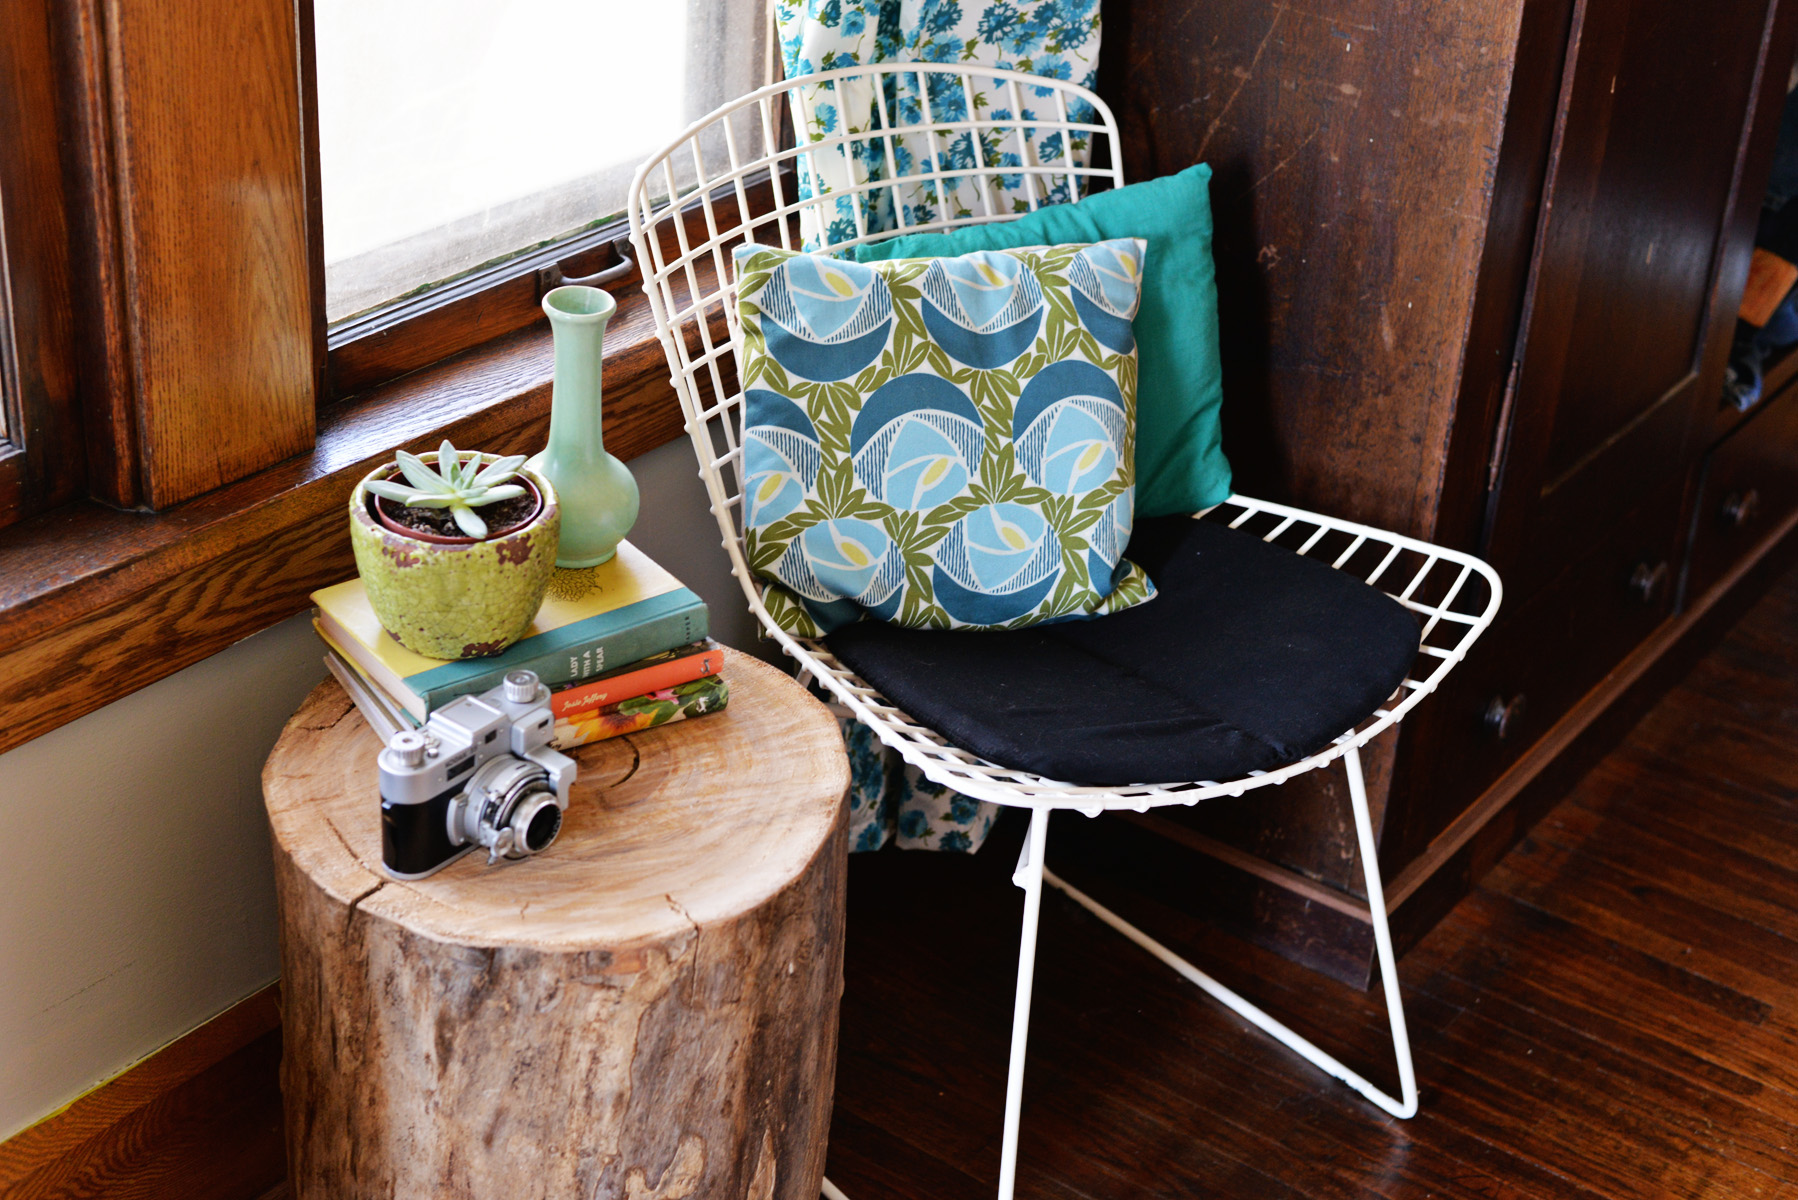 diy tree stump side table rolling wood accent ese style lamps modern decor ideas green coffee counter height dining chairs mirrored bedside next cream colored tables battery